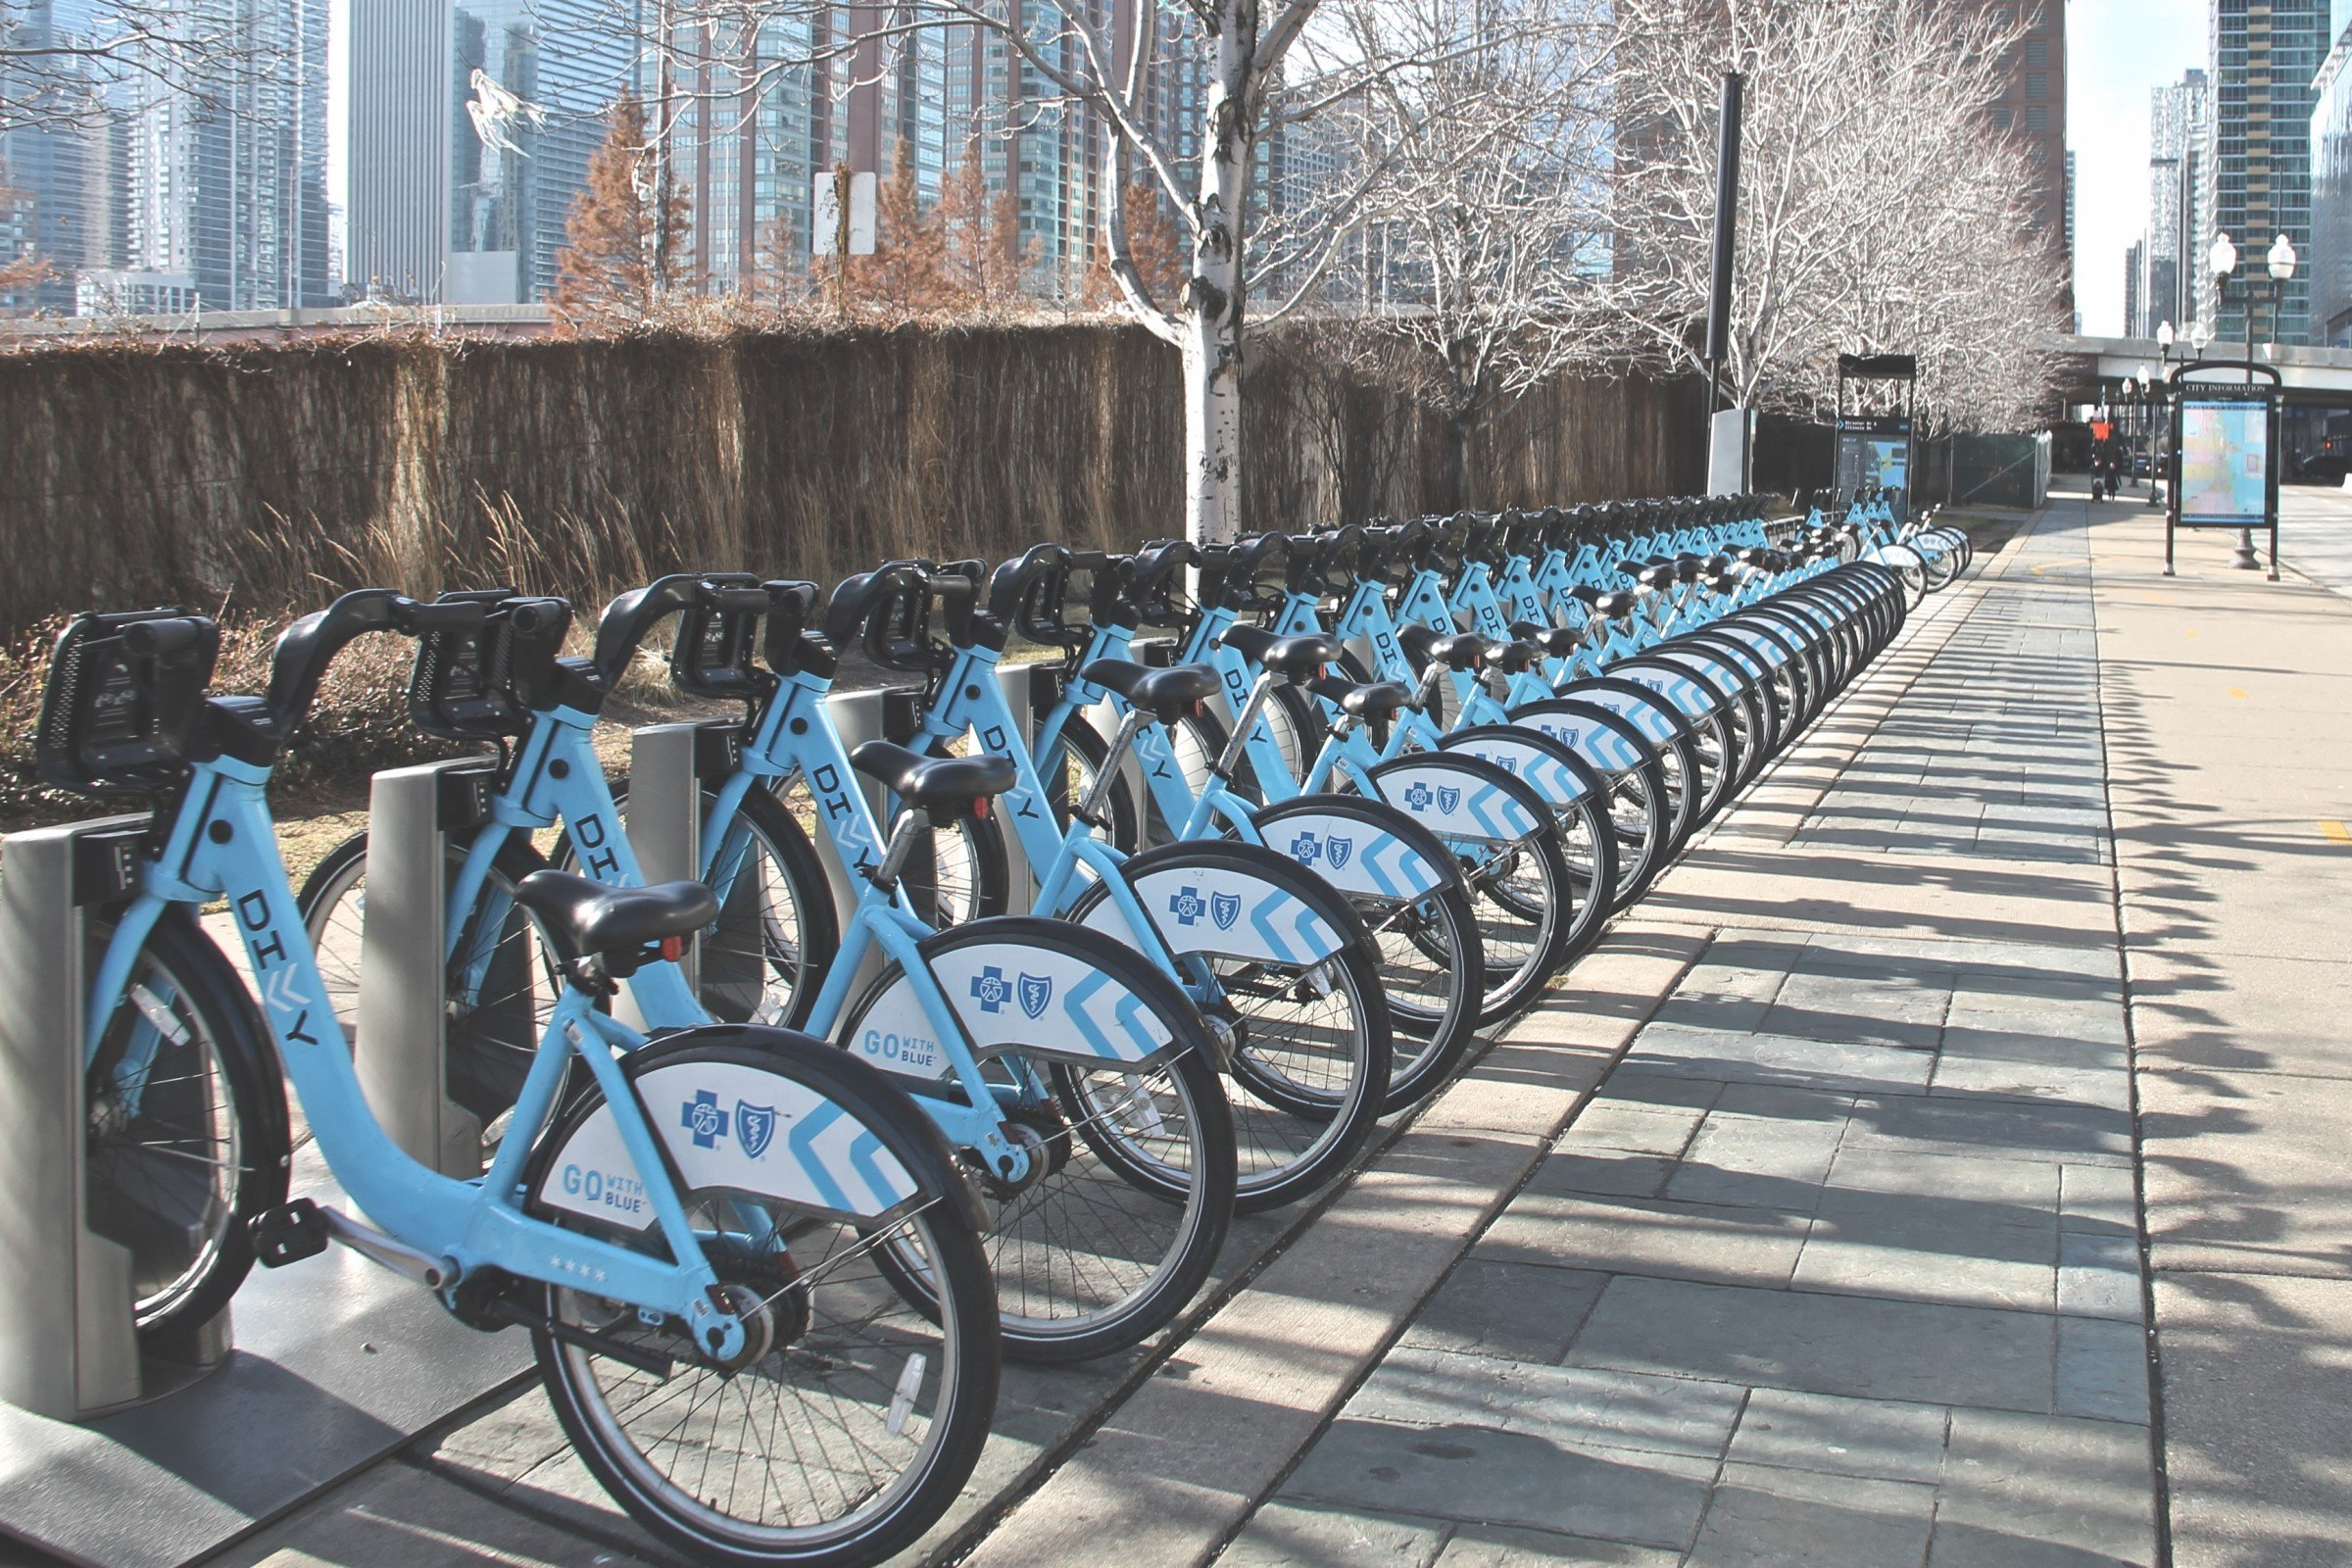 Line of Bicycles for Rent on Rack